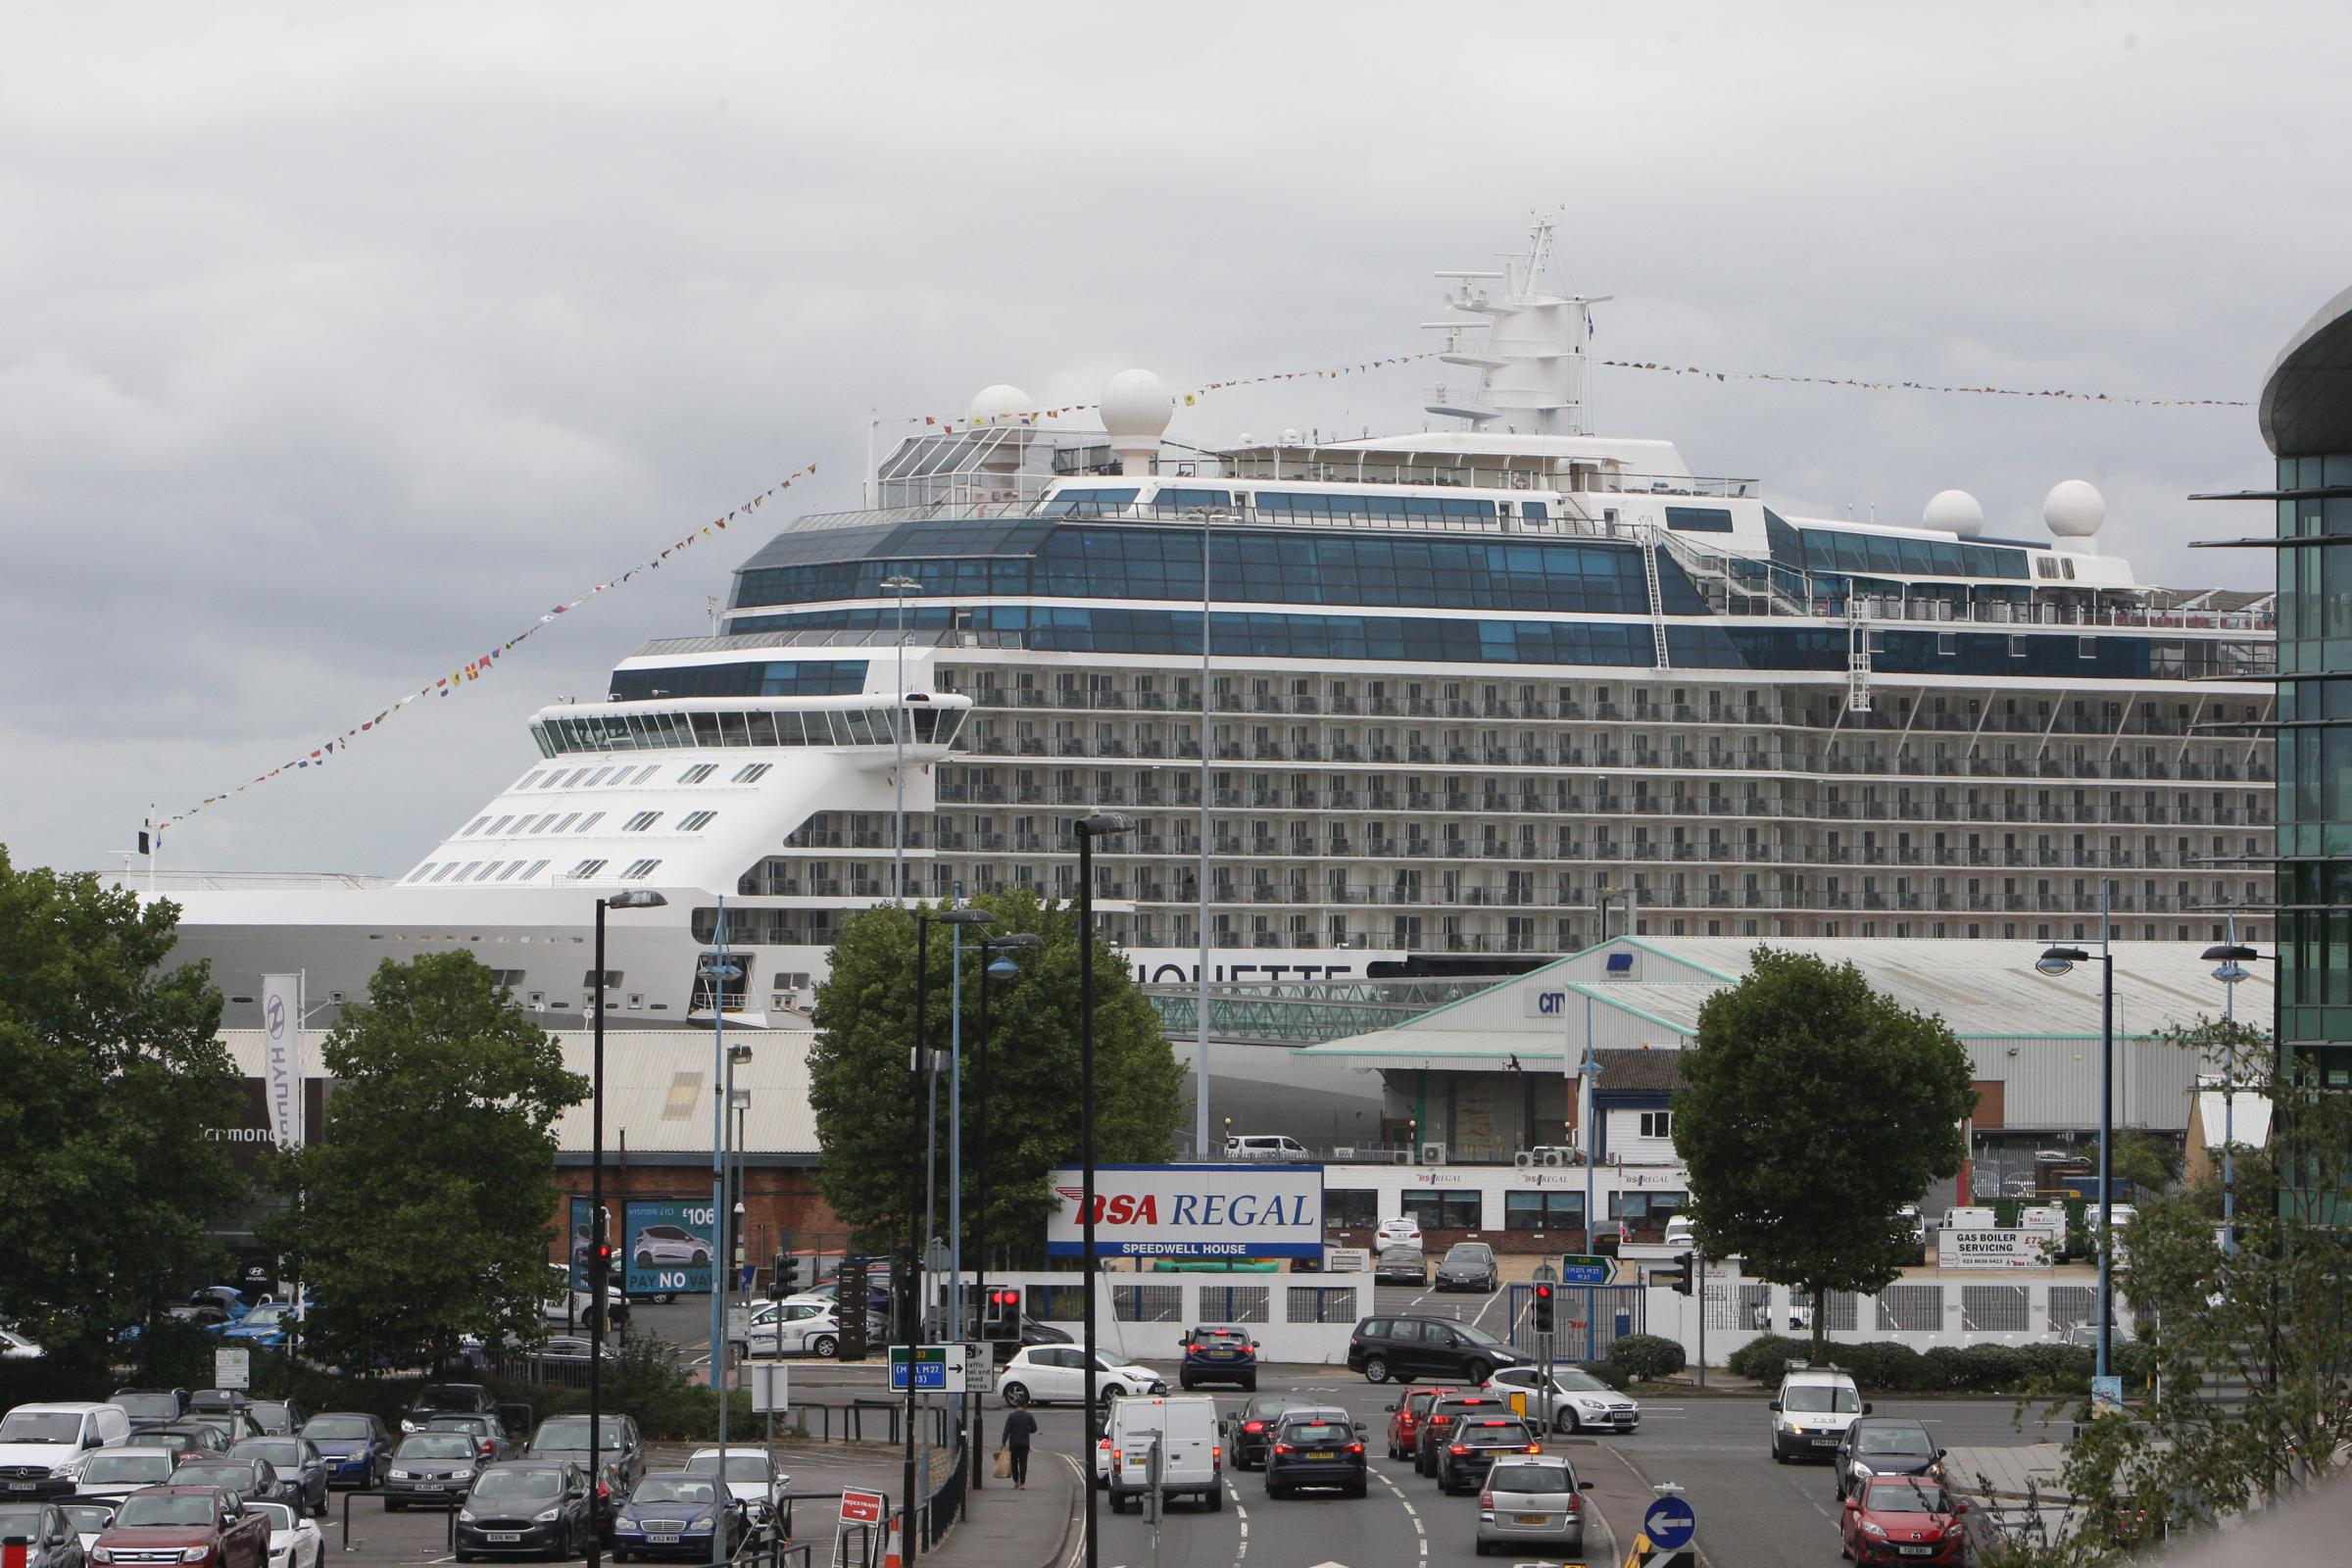 A cruise ship in the Port of Southampton.